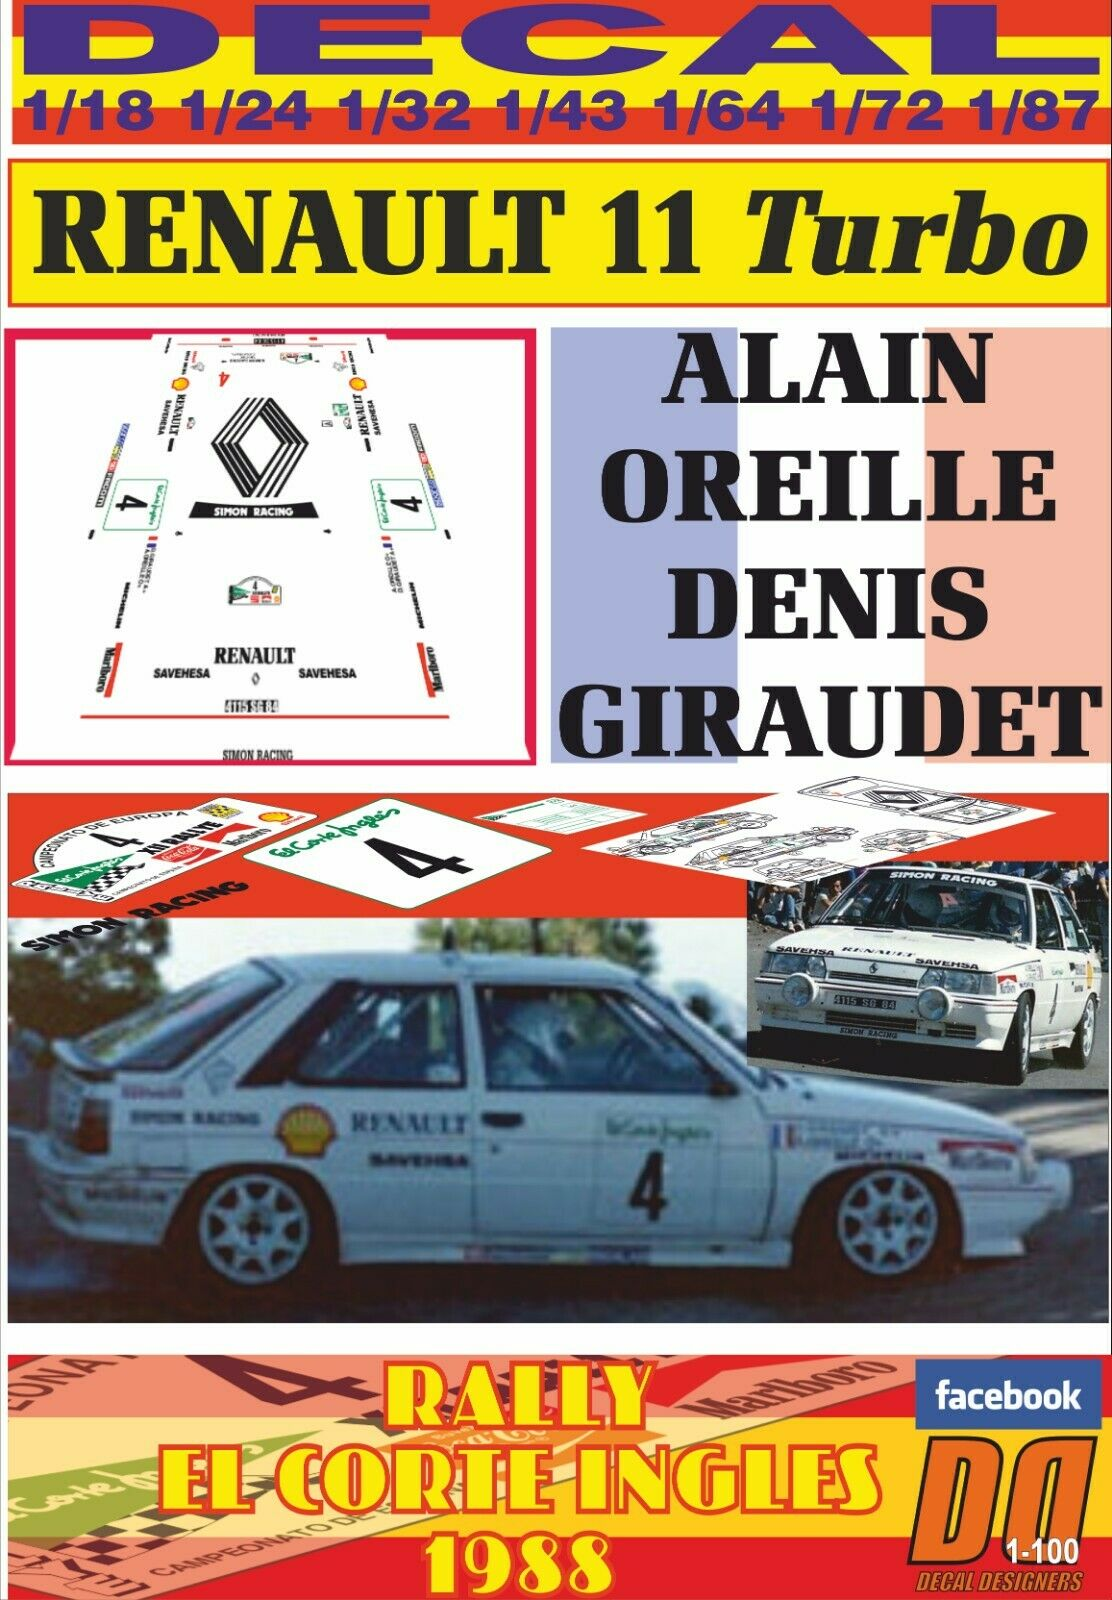 DECAL RENAULT 11 TURBO A. OREILLE R. EL CORTE INGLES 1988 5th (04)